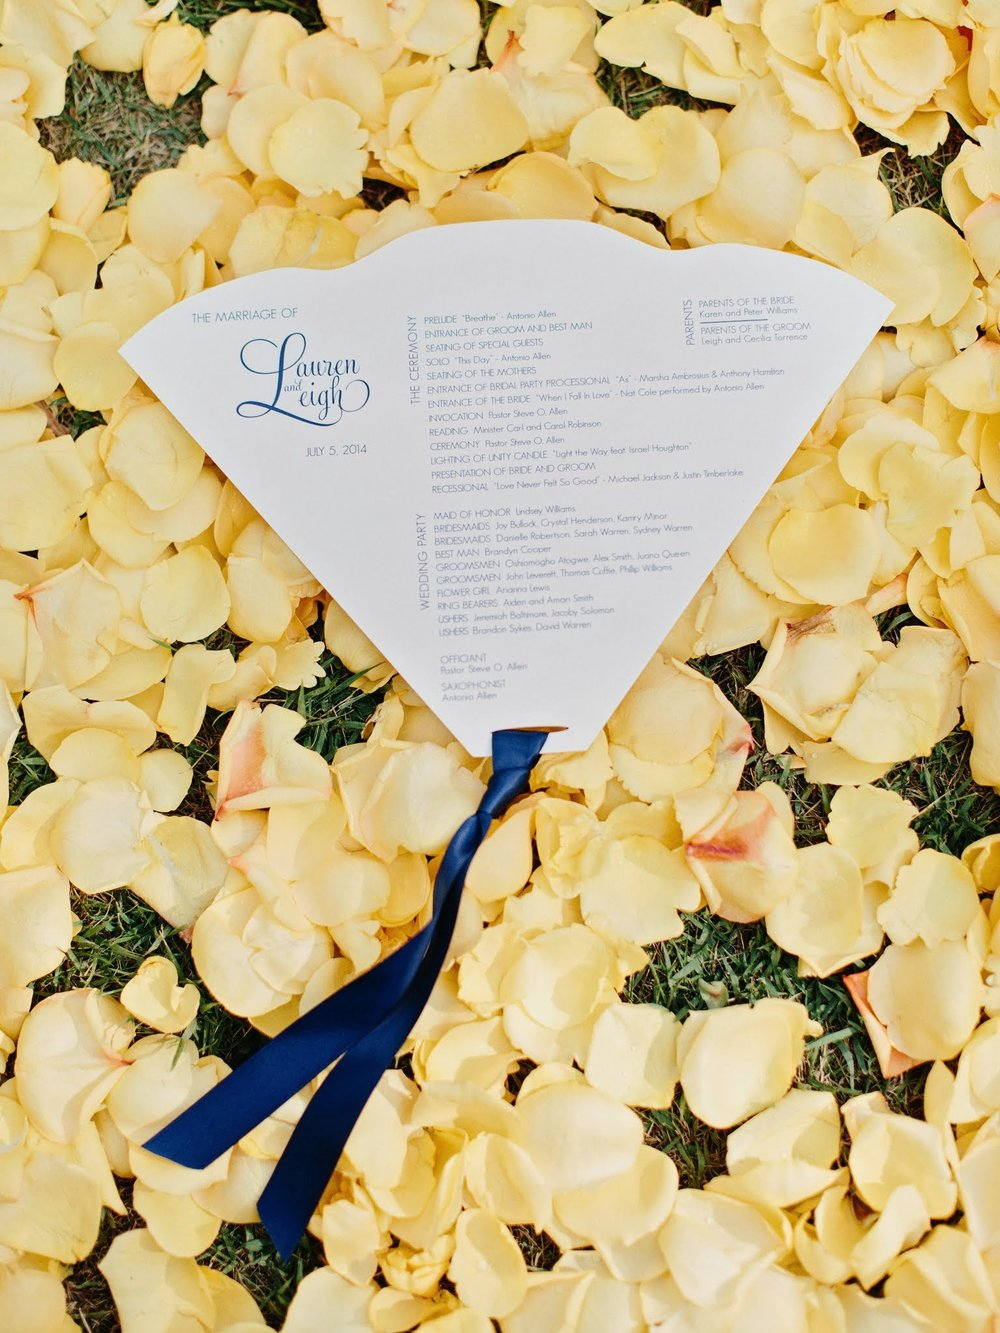 Diecut Wedding Program Fan.jpg